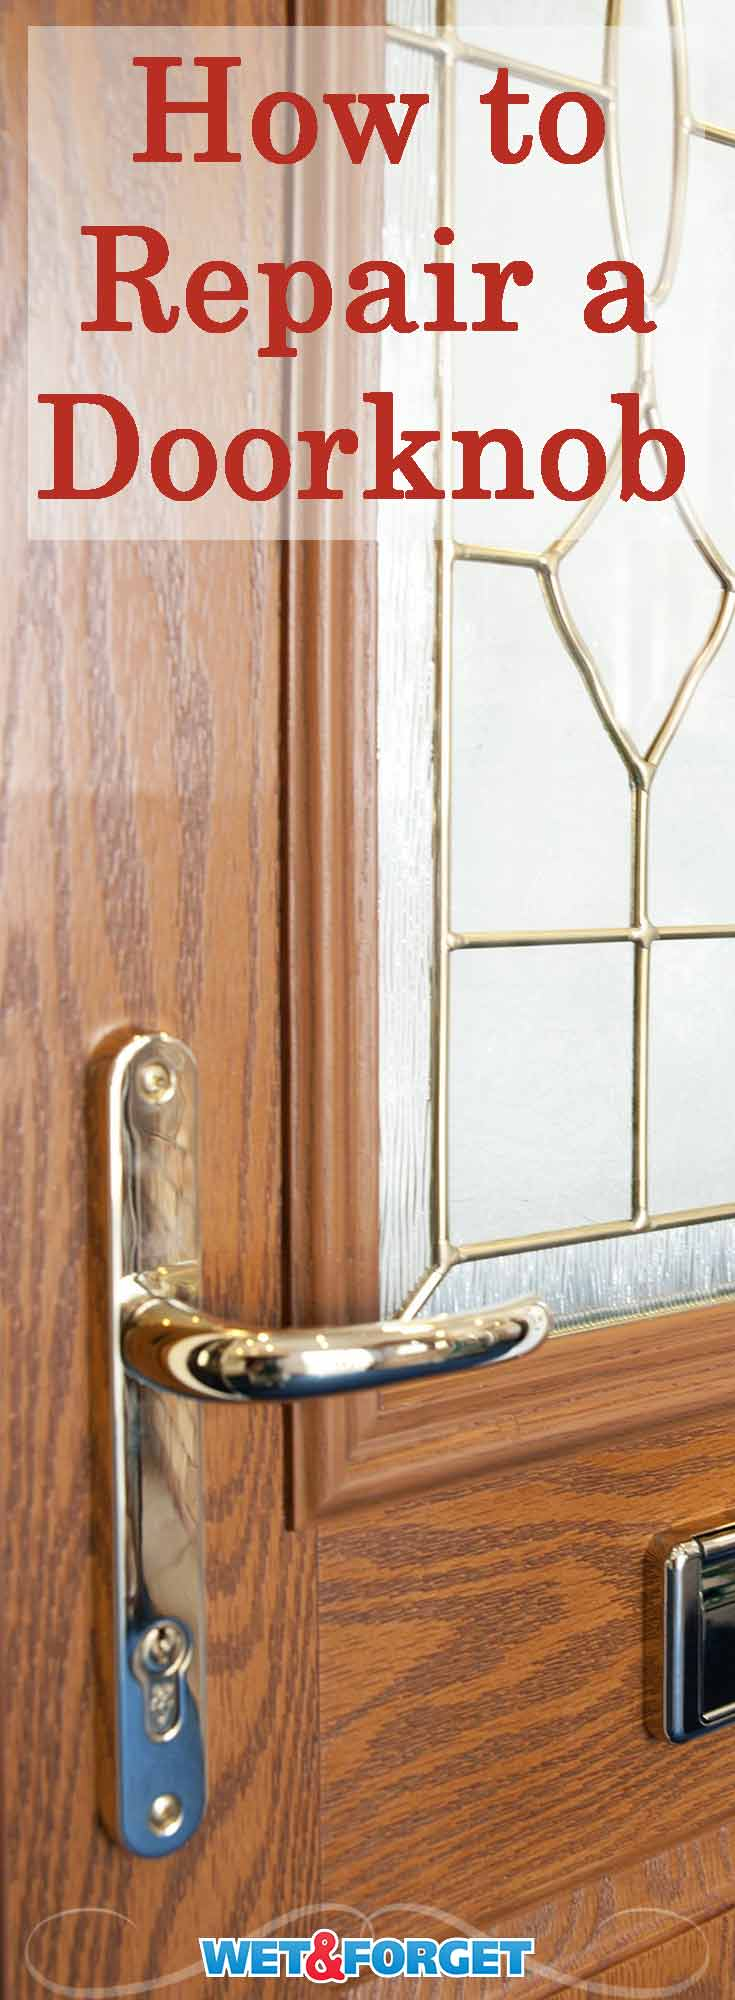 Do you have a damaged or loose doorknob? Learn how to repair or replace your doorknob with these easy steps!